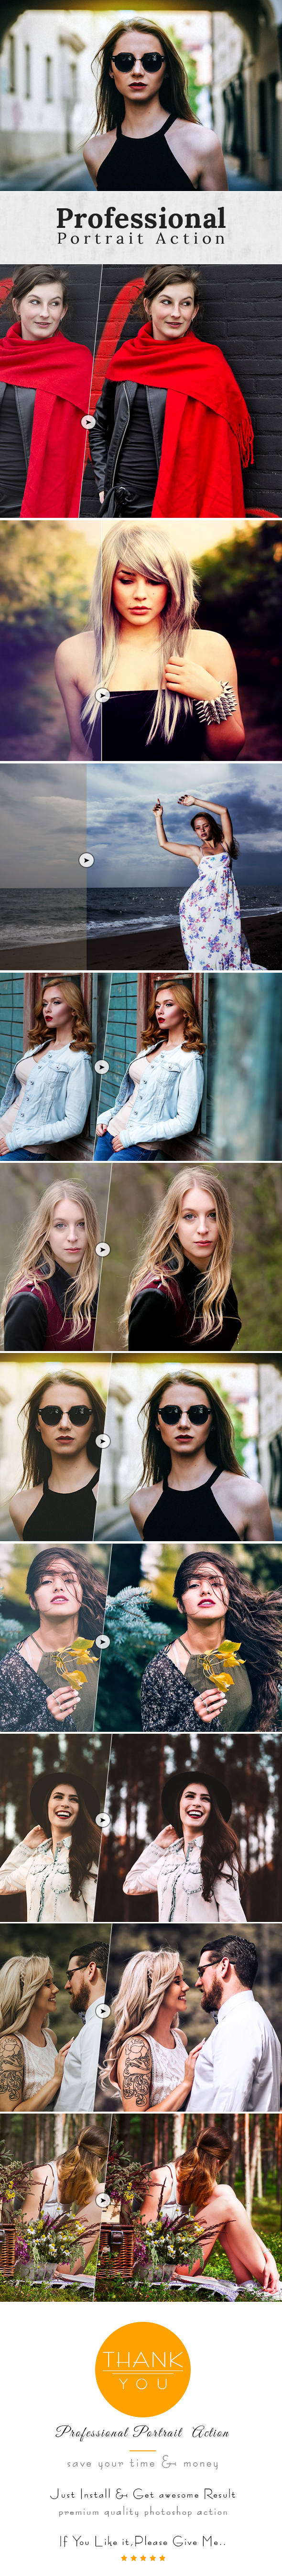 Professional Portrait Action - Photo Effects Actions